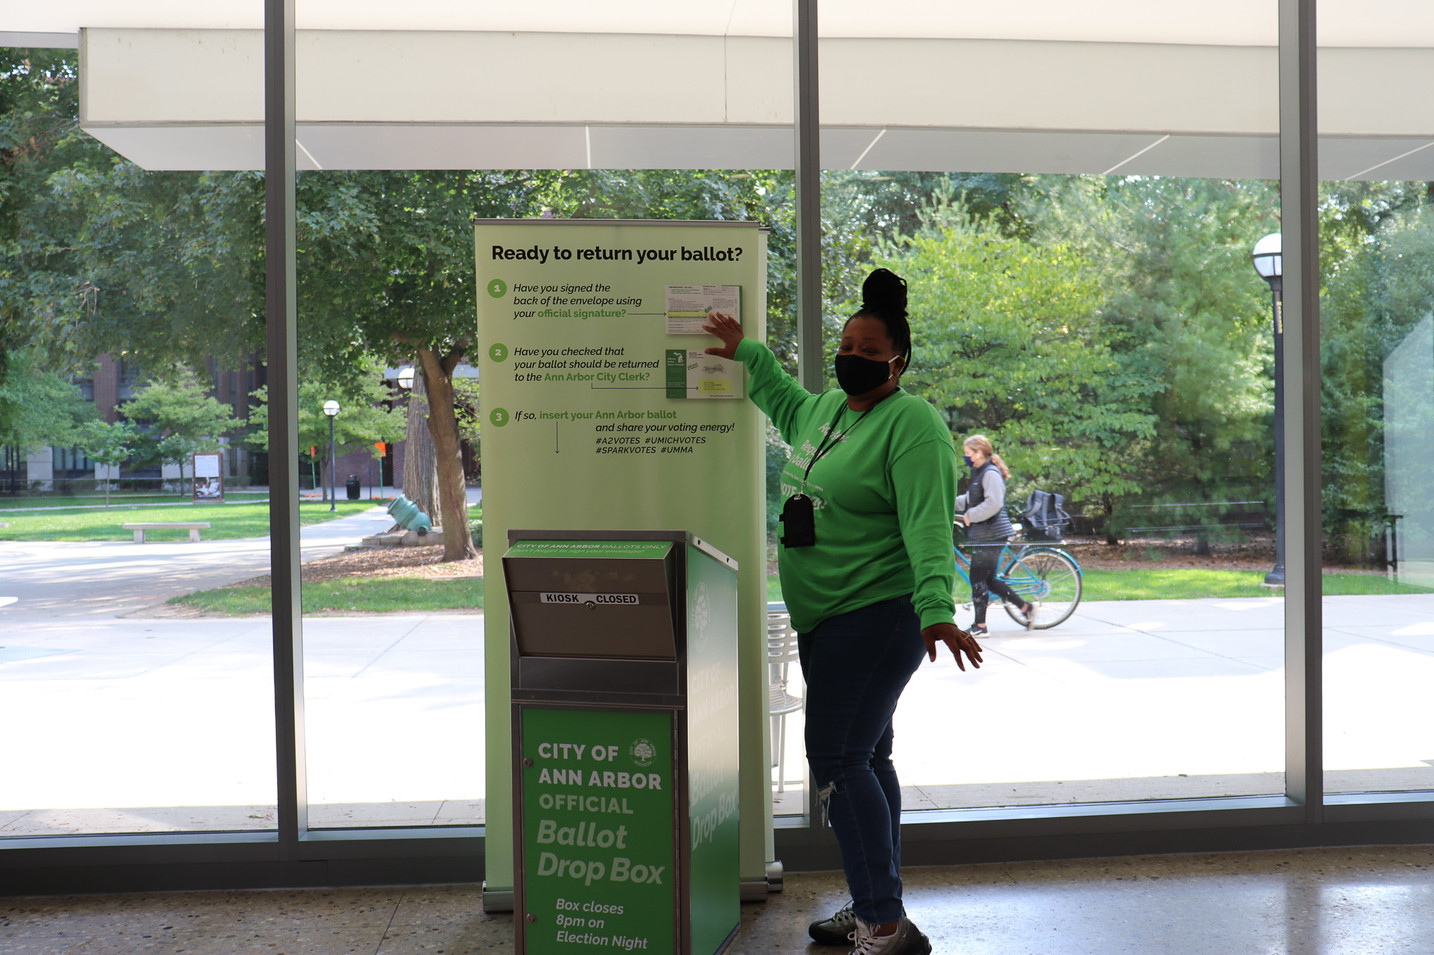 A banner next to the ballot box reminded visitors to sign their ballot envelope before depositing it. (The design was so successful at reducing the number of unsigned envelopes that the City Clerk replicated our set up at City Hall!)